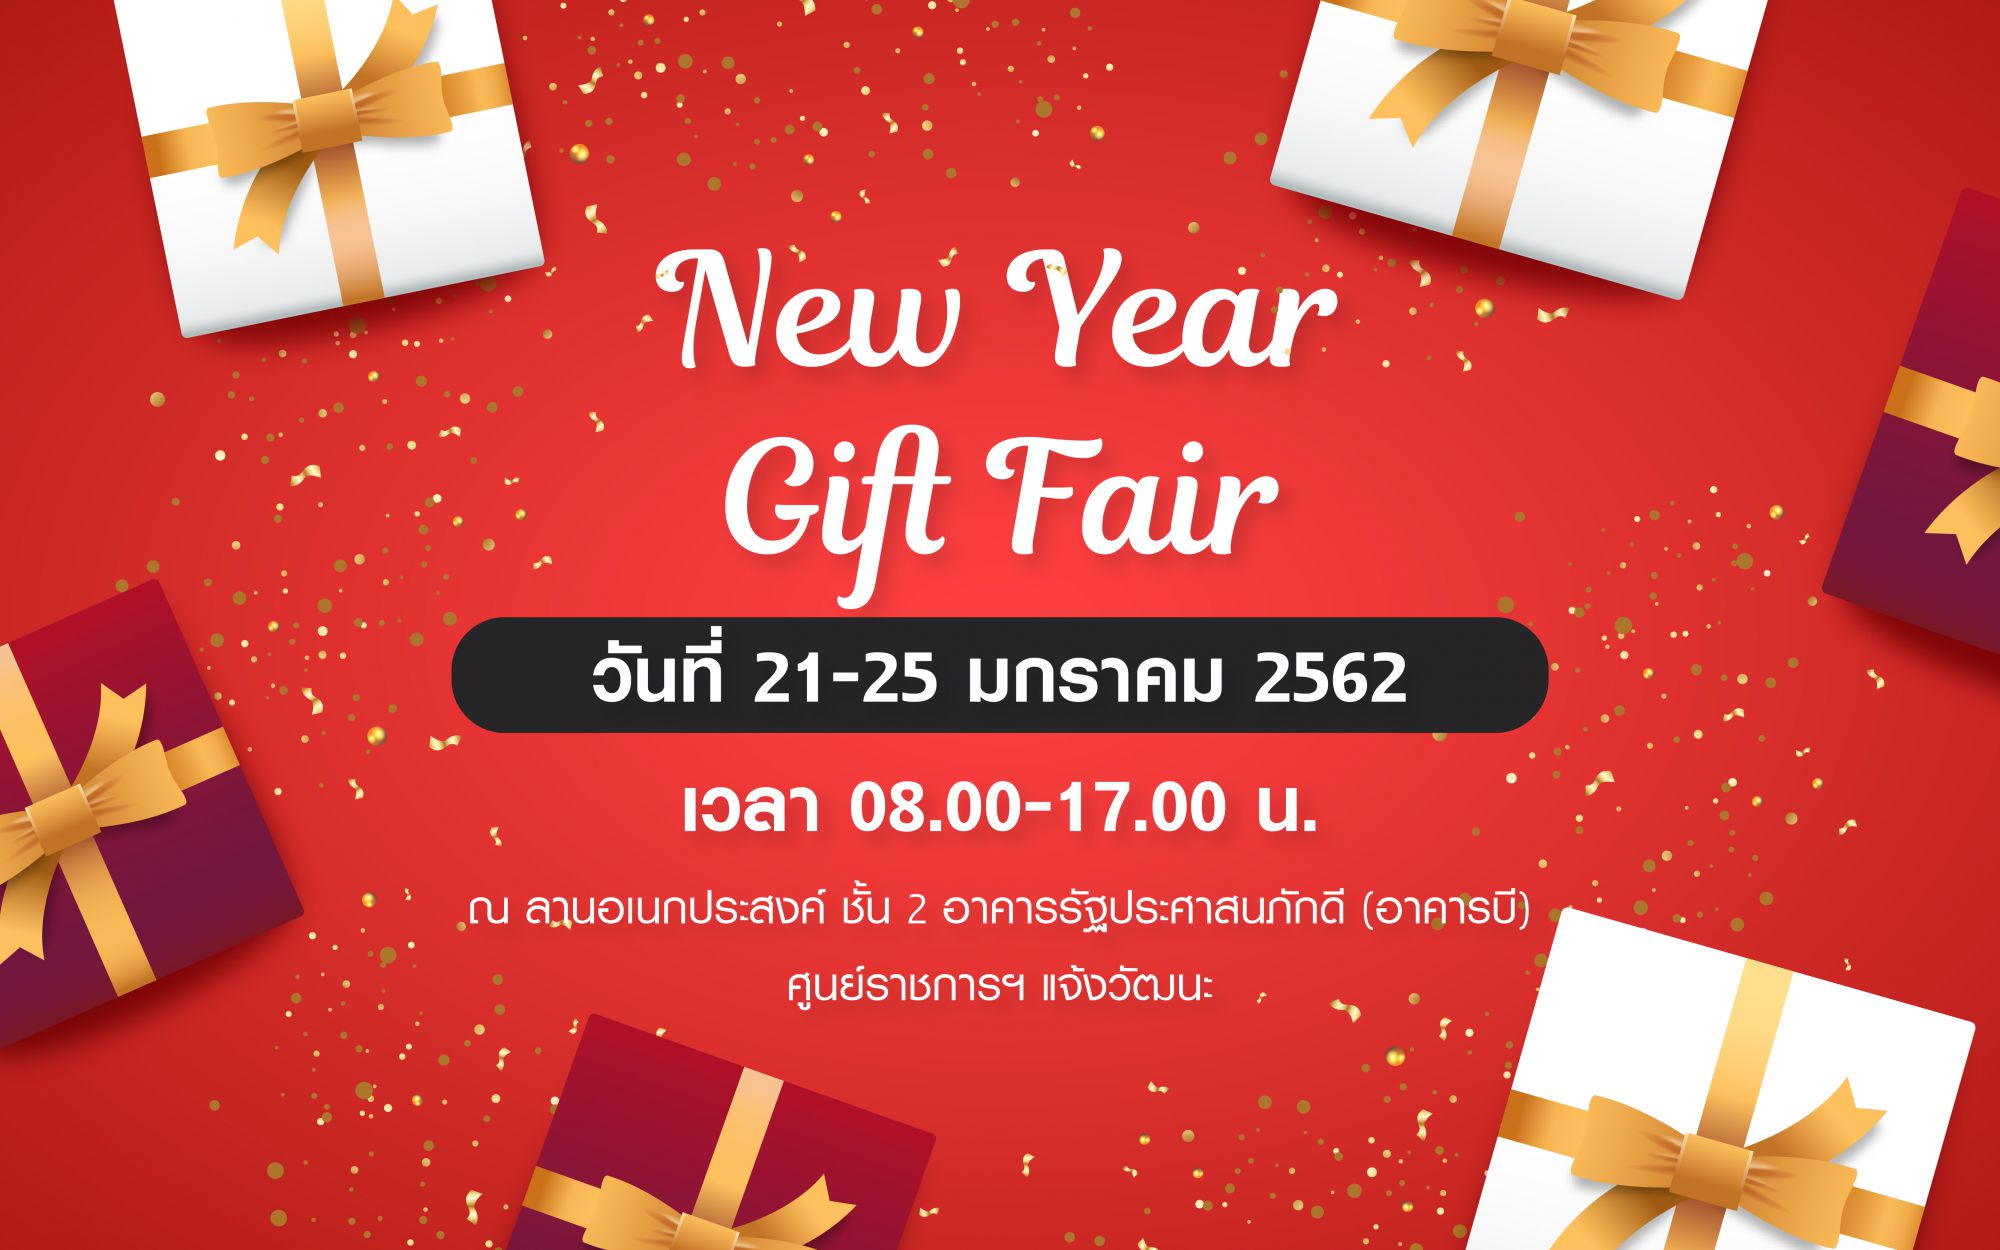 New Year Gift Fair